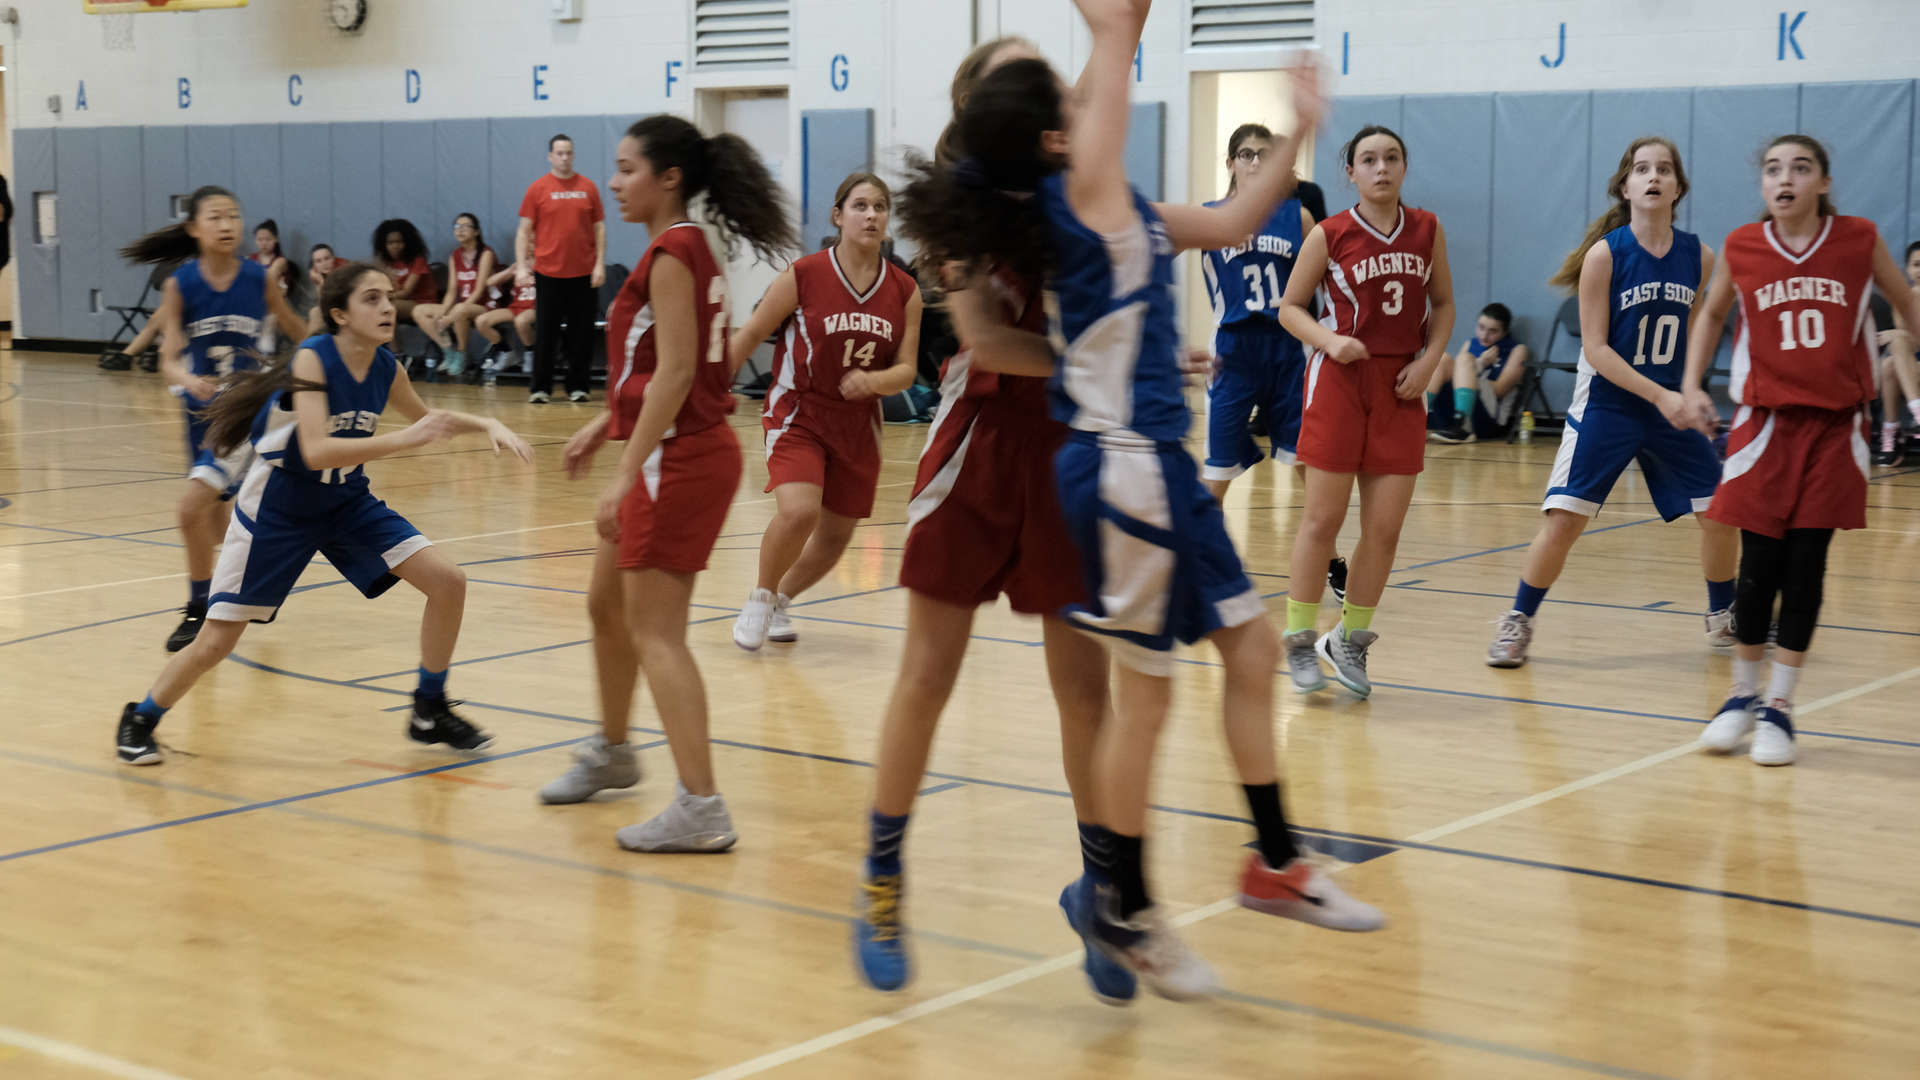 A photo of a girls basketball game, ESMS vs Wagner